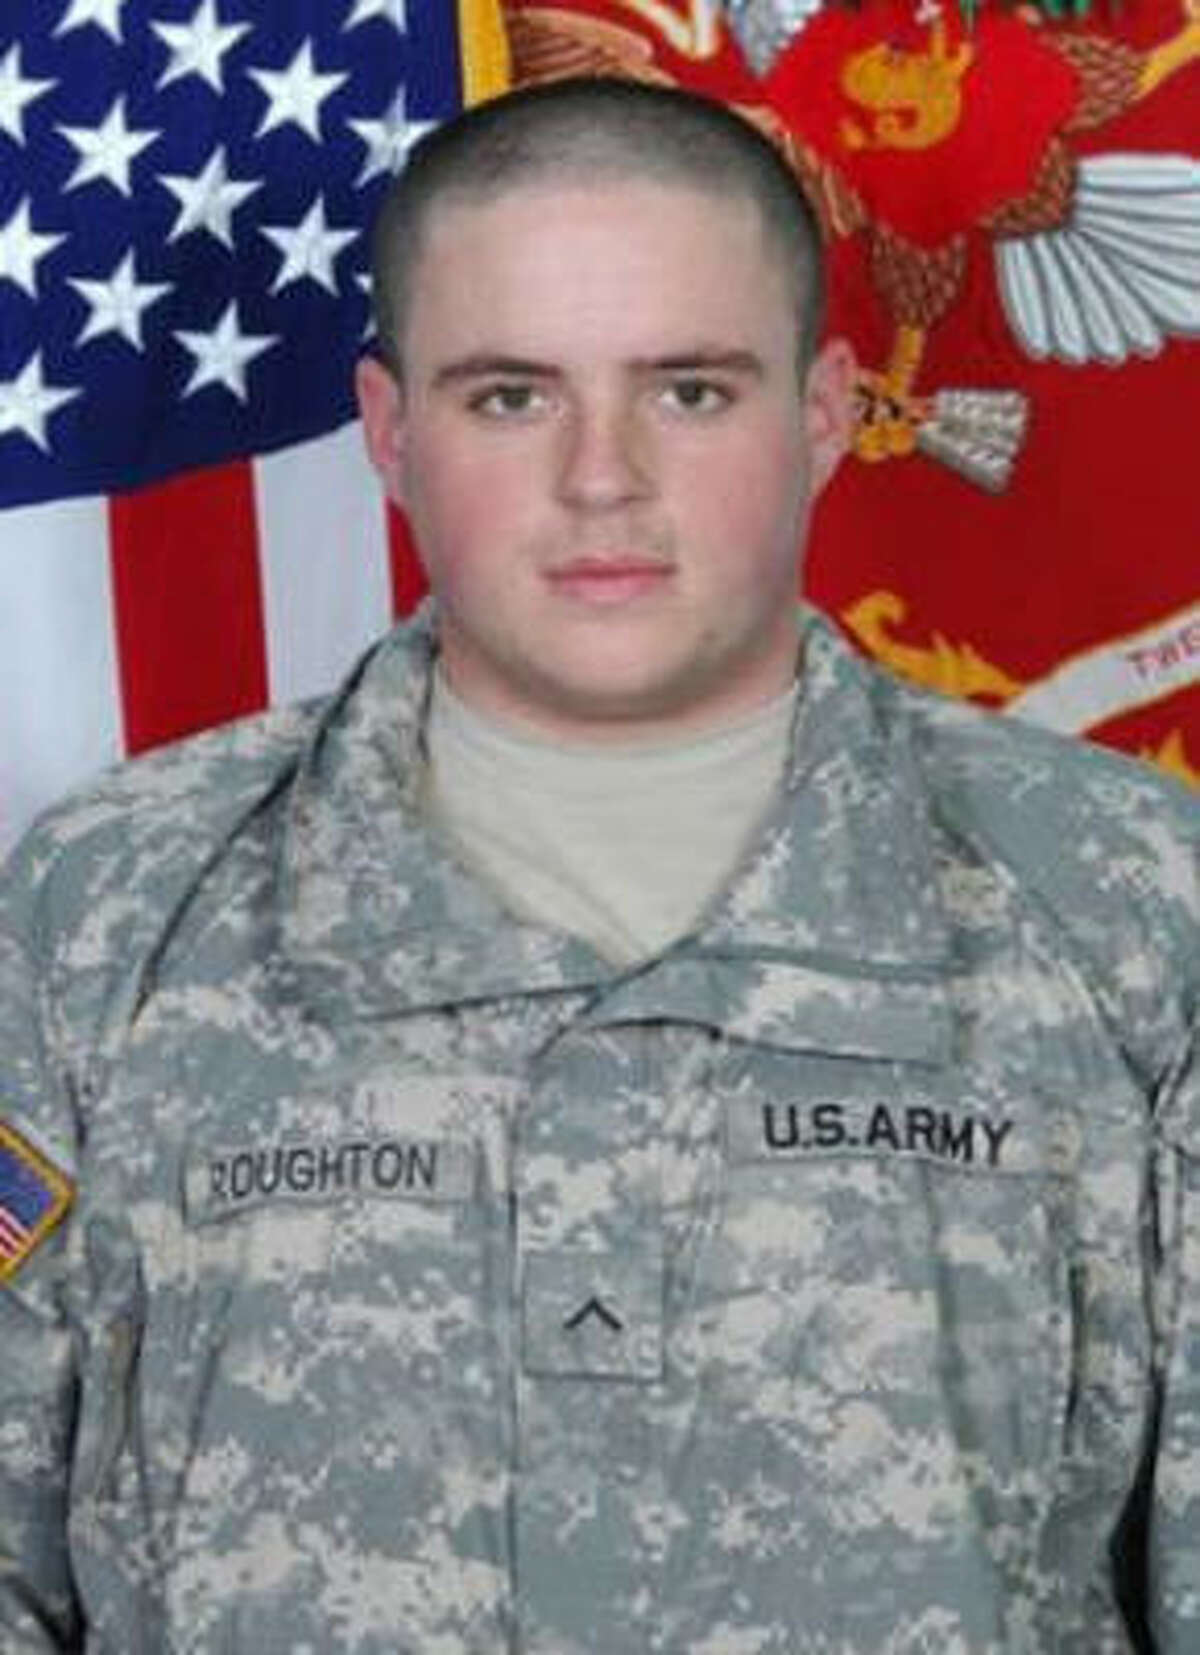 Andrew Roughton left a college scholarship and joined the Army.